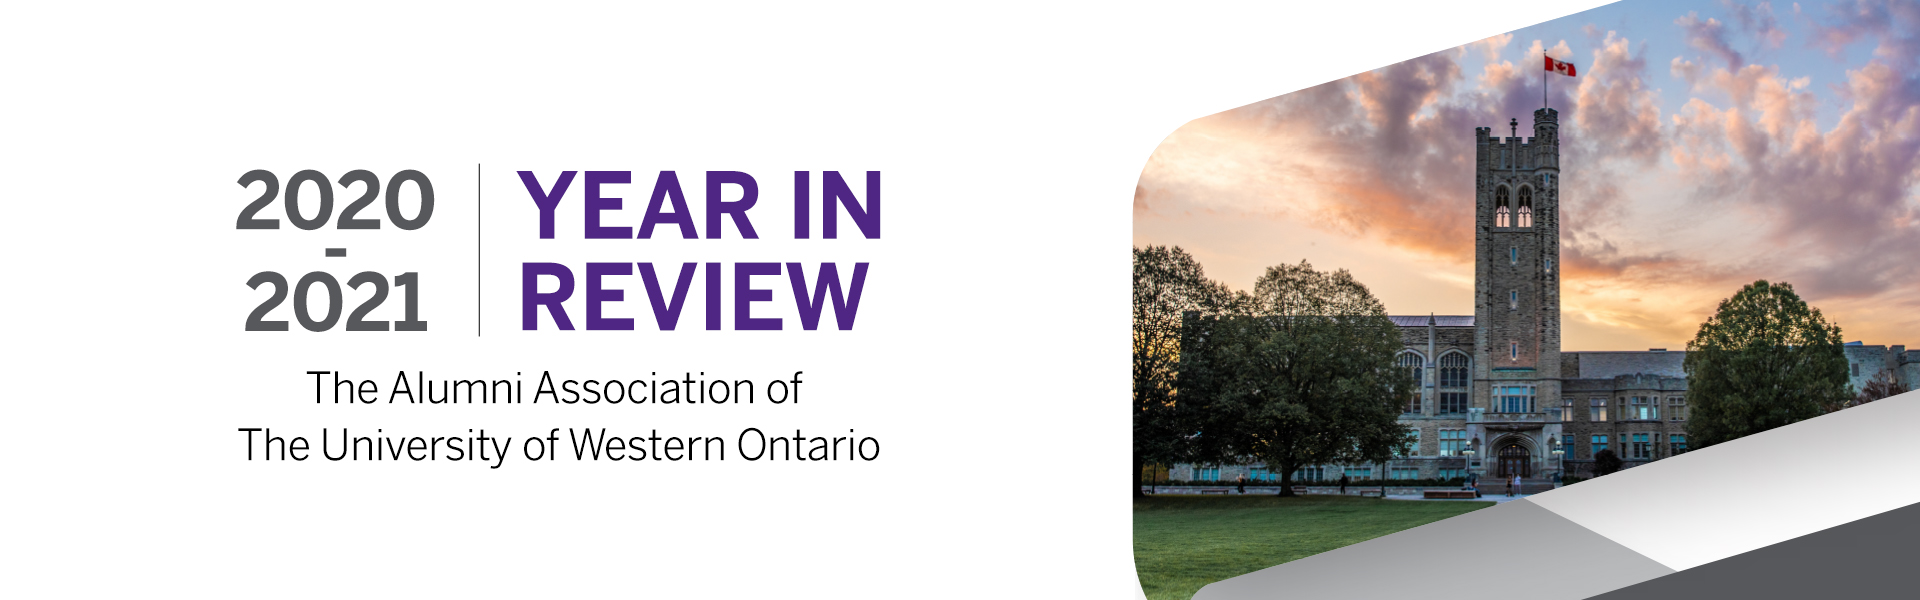 2020-21 Year in Review: The Alumni Association of The University of Western Ontario